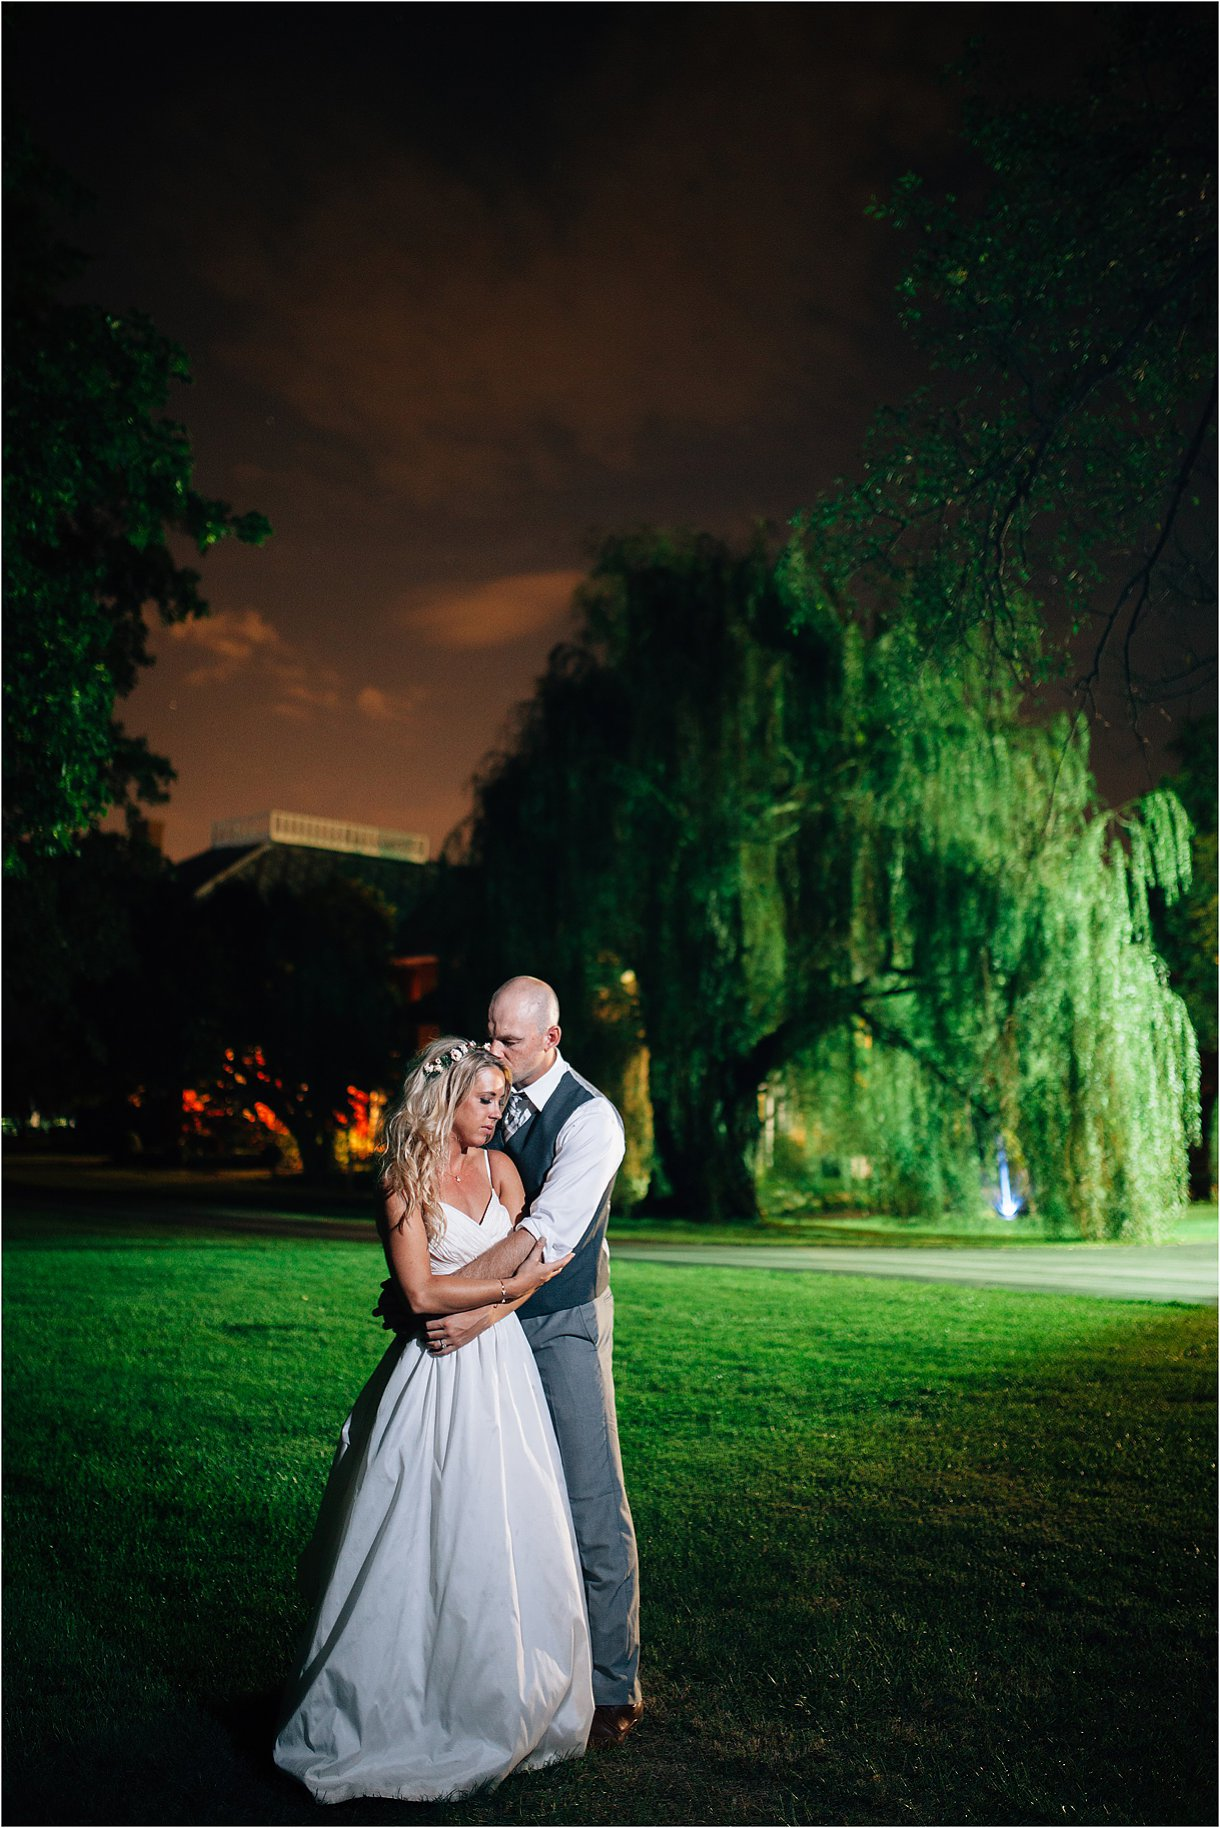 Dayton wedding photographer 3179